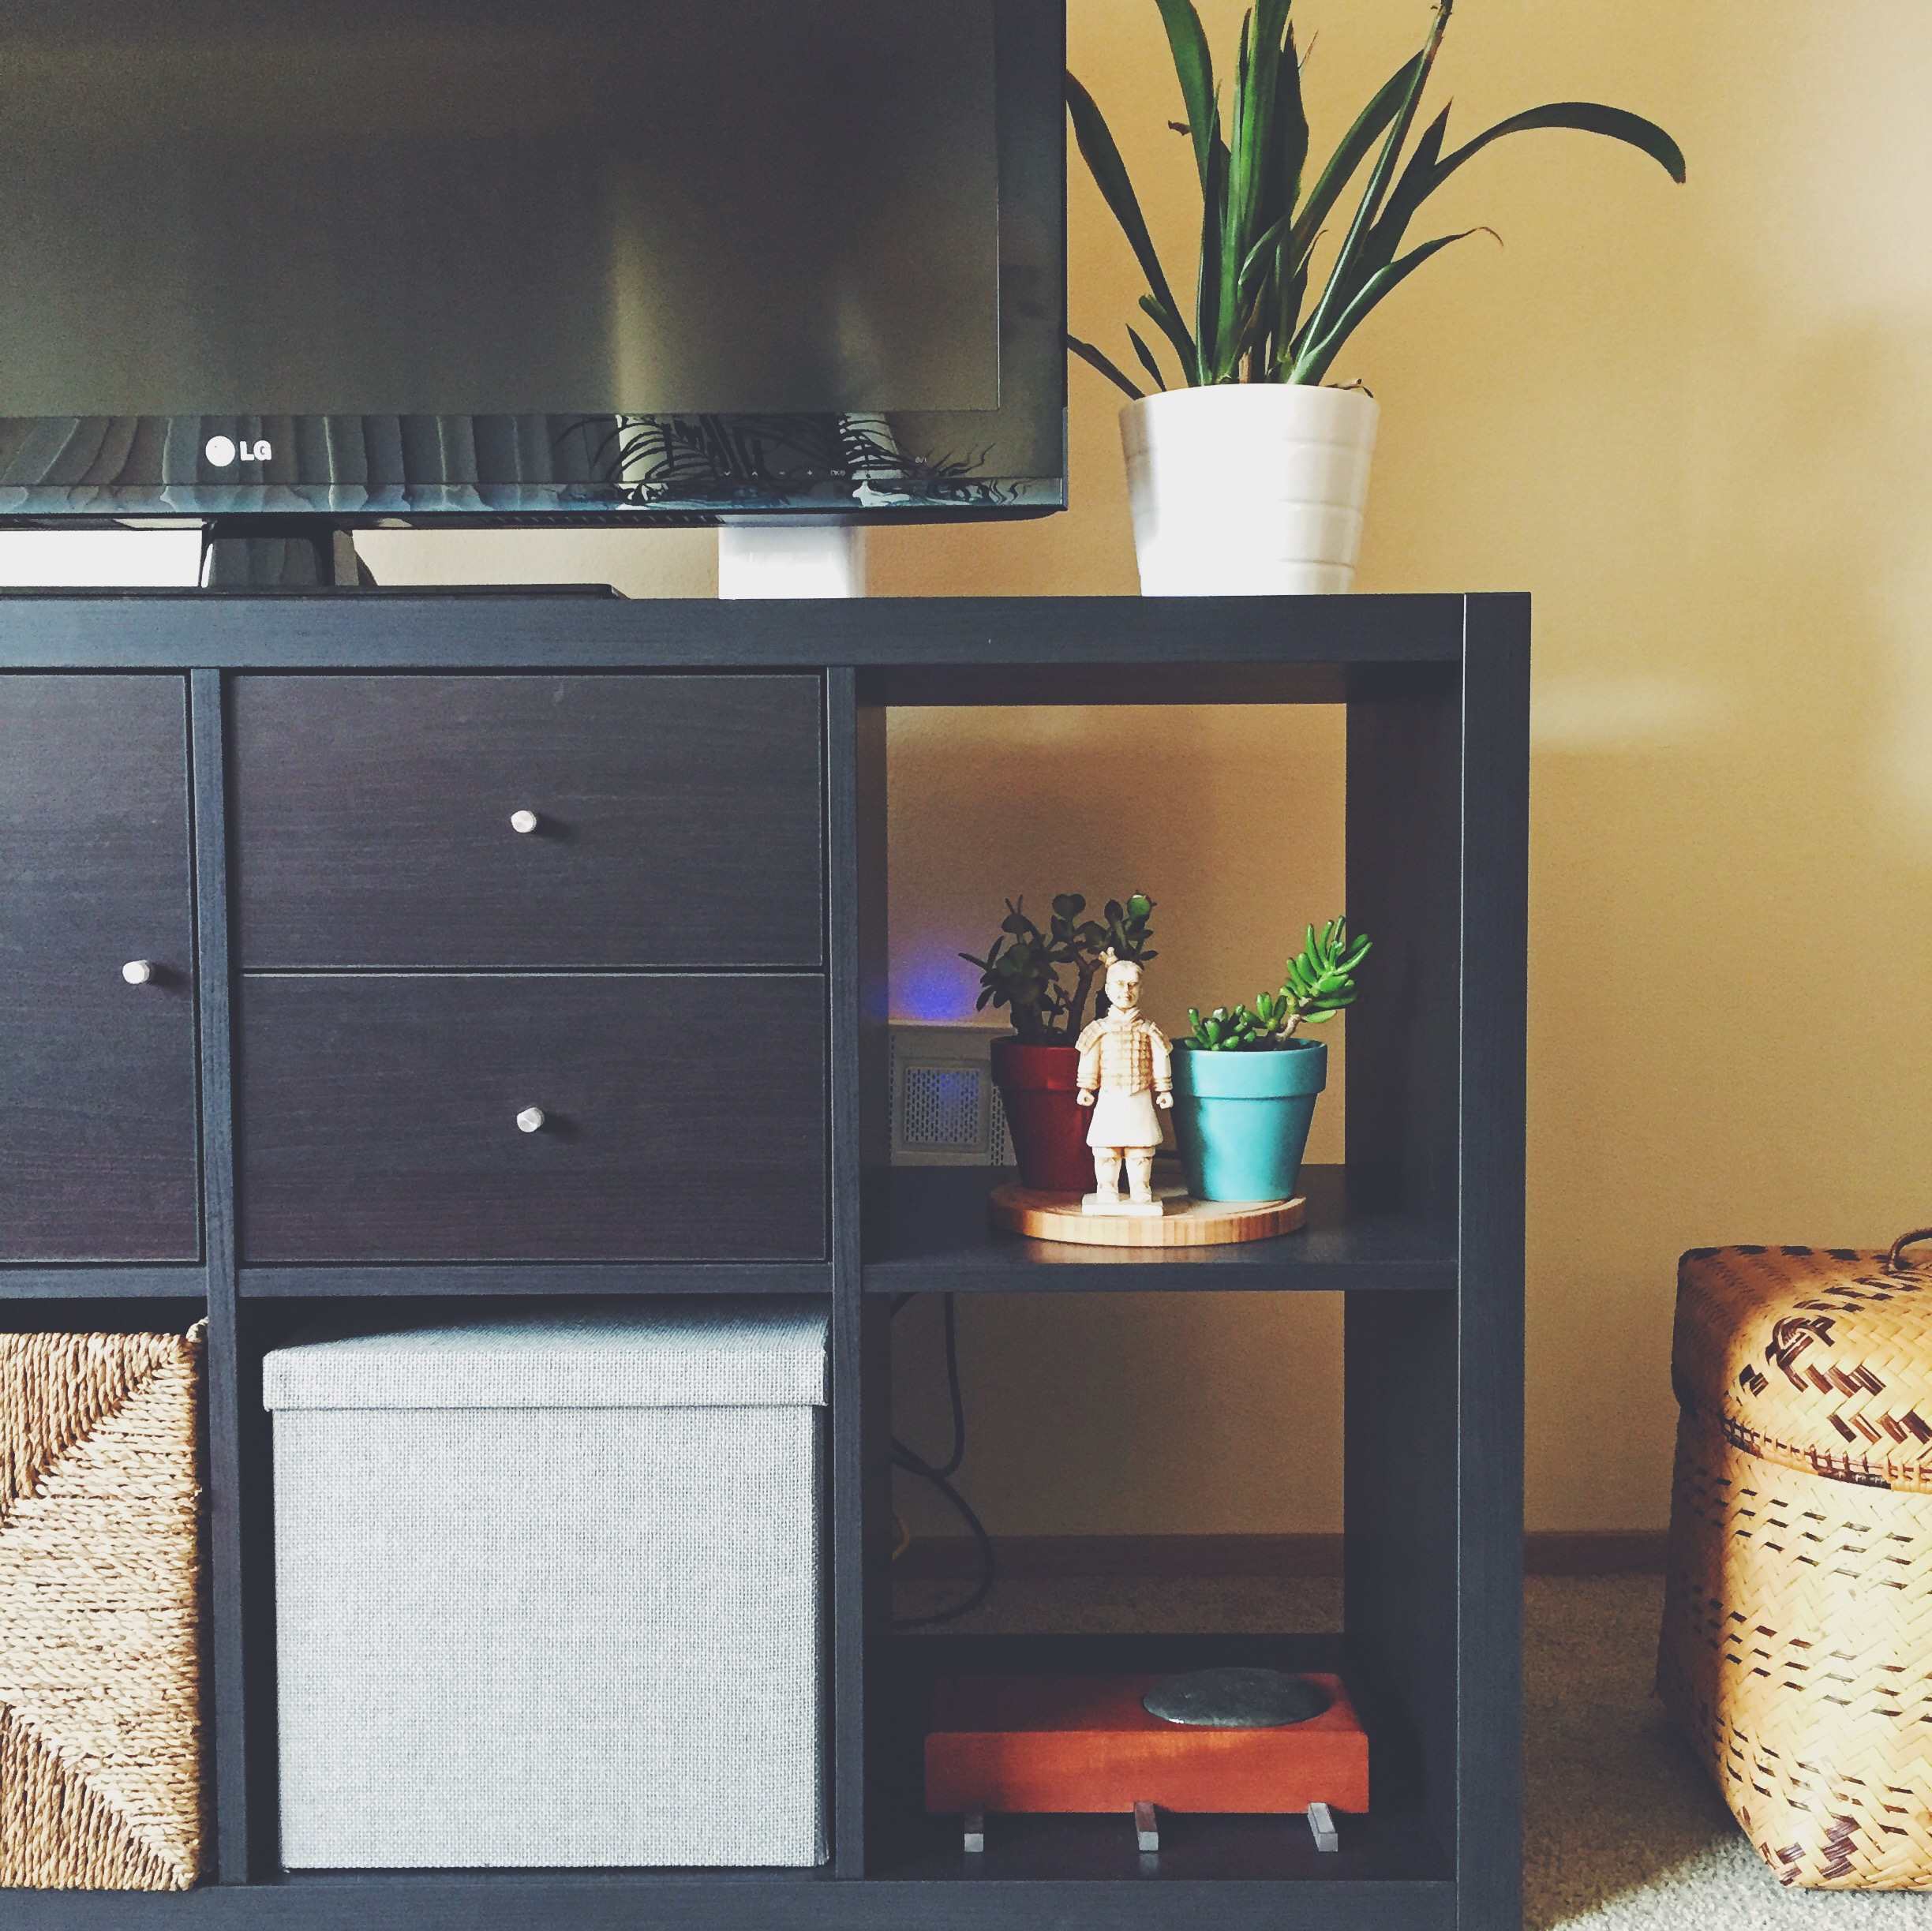 We love IKEA. Clean lines and functional design. And when you factor in the affordability—pretty  hard to beat ...